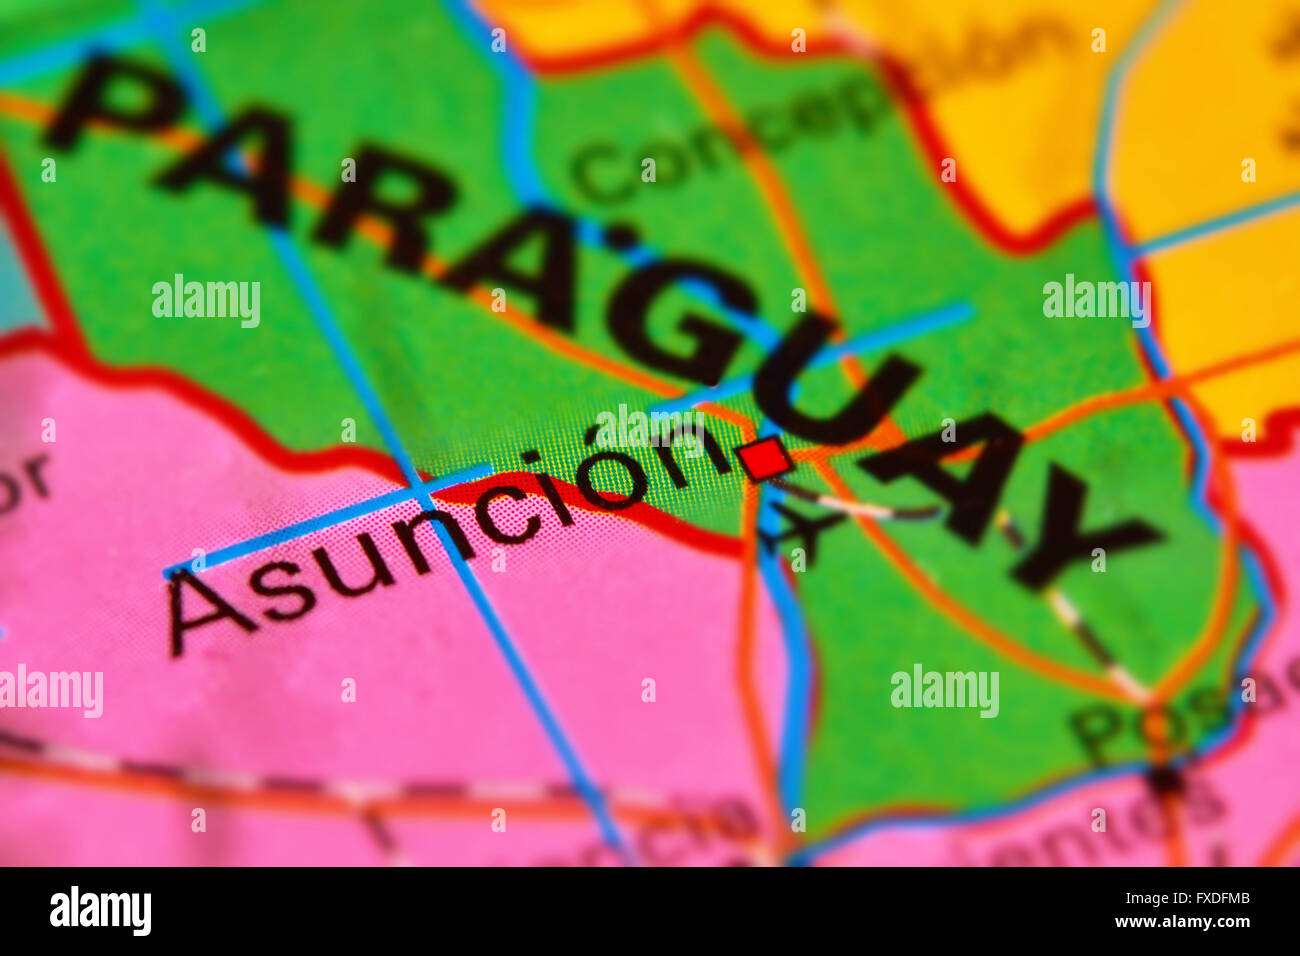 Paraguay and Capital City Asuncion on the World Map - Stock Image